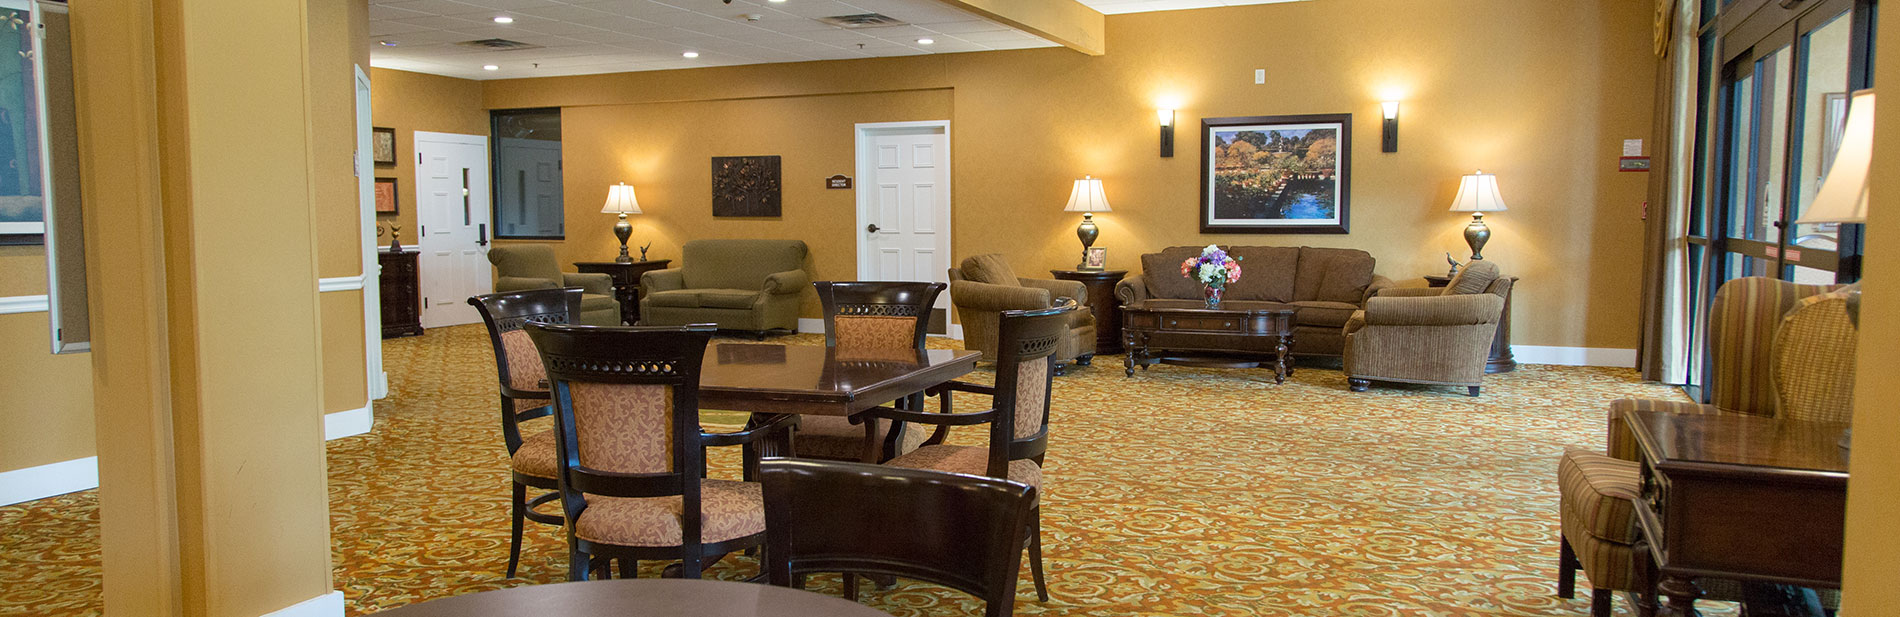 Summit Hill Senior Living - isted Living and Memory Care ... on